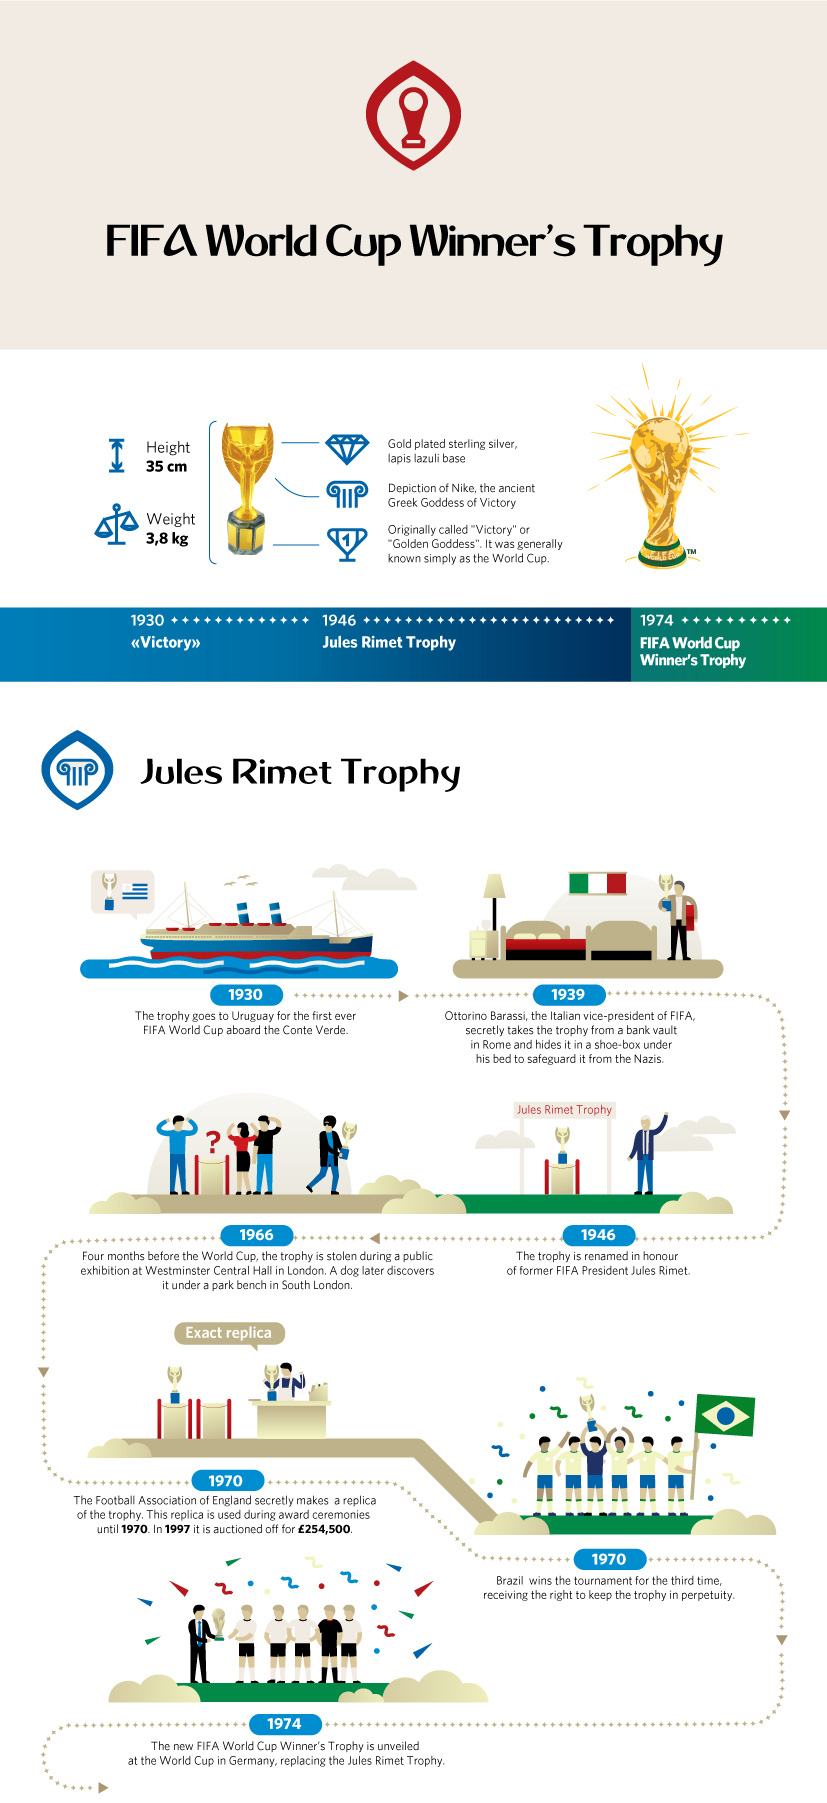 The World Cup History